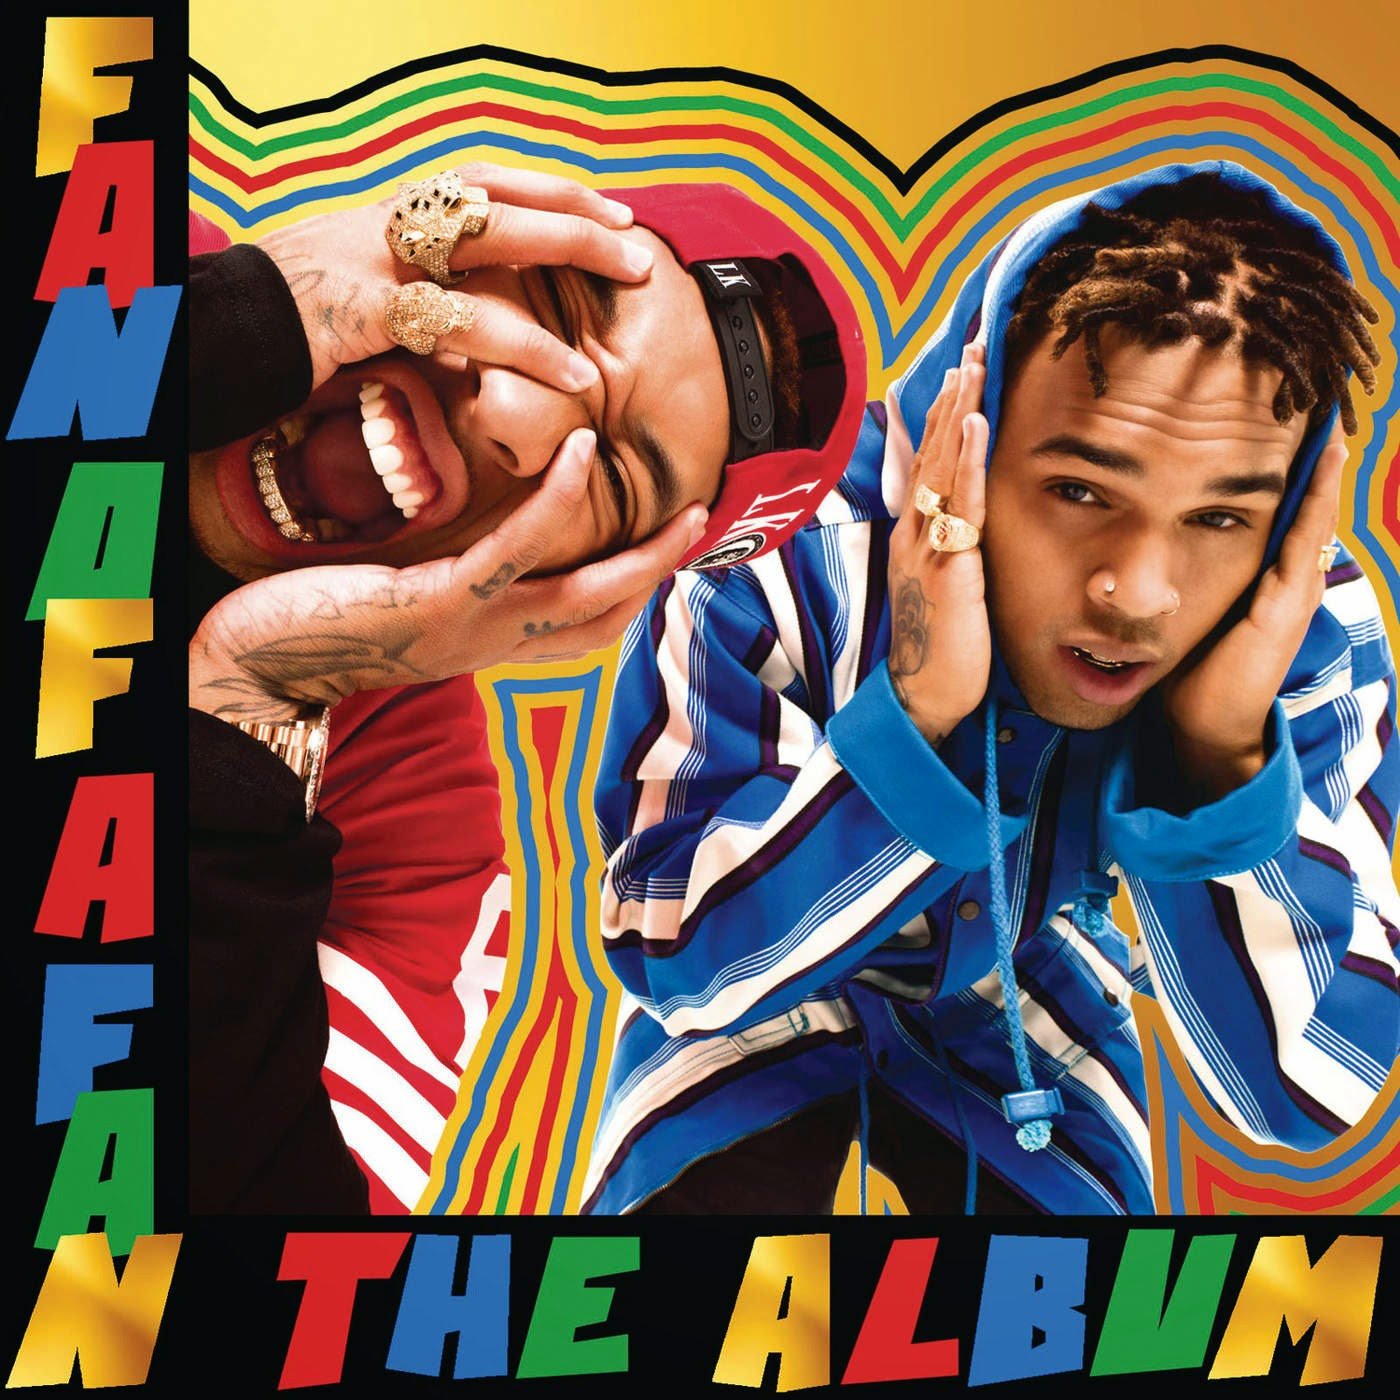 Chris Brown X Tyga - Fan of a Fan the Album (Deluxe Version) [Clean] Cover